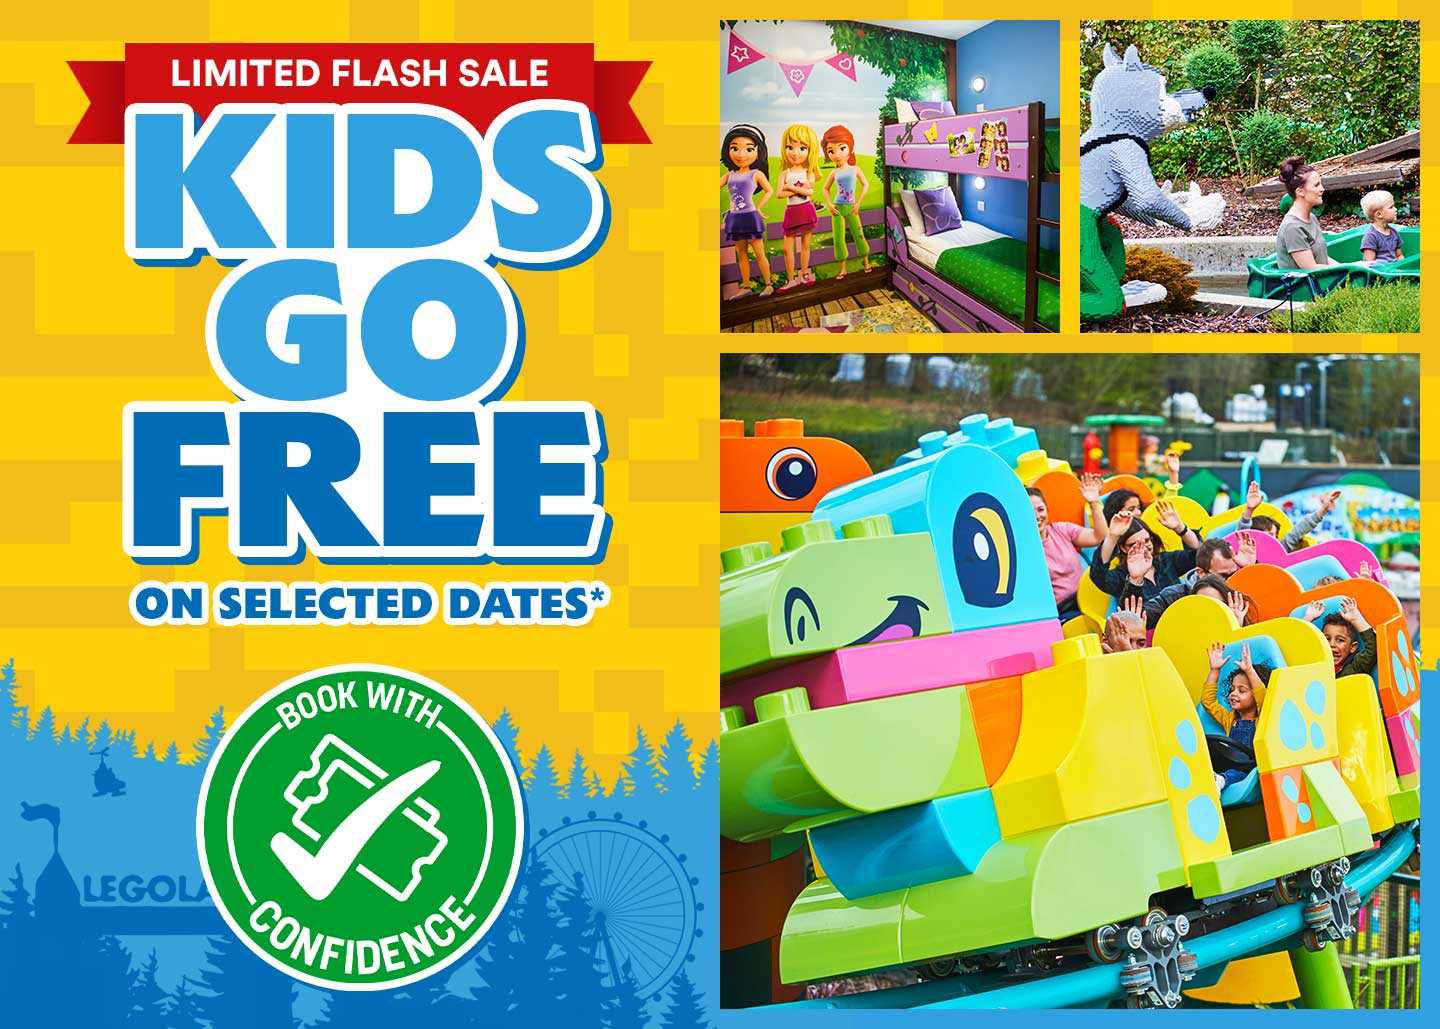 Kids Go FREE offer with LEGOLAND Holidays